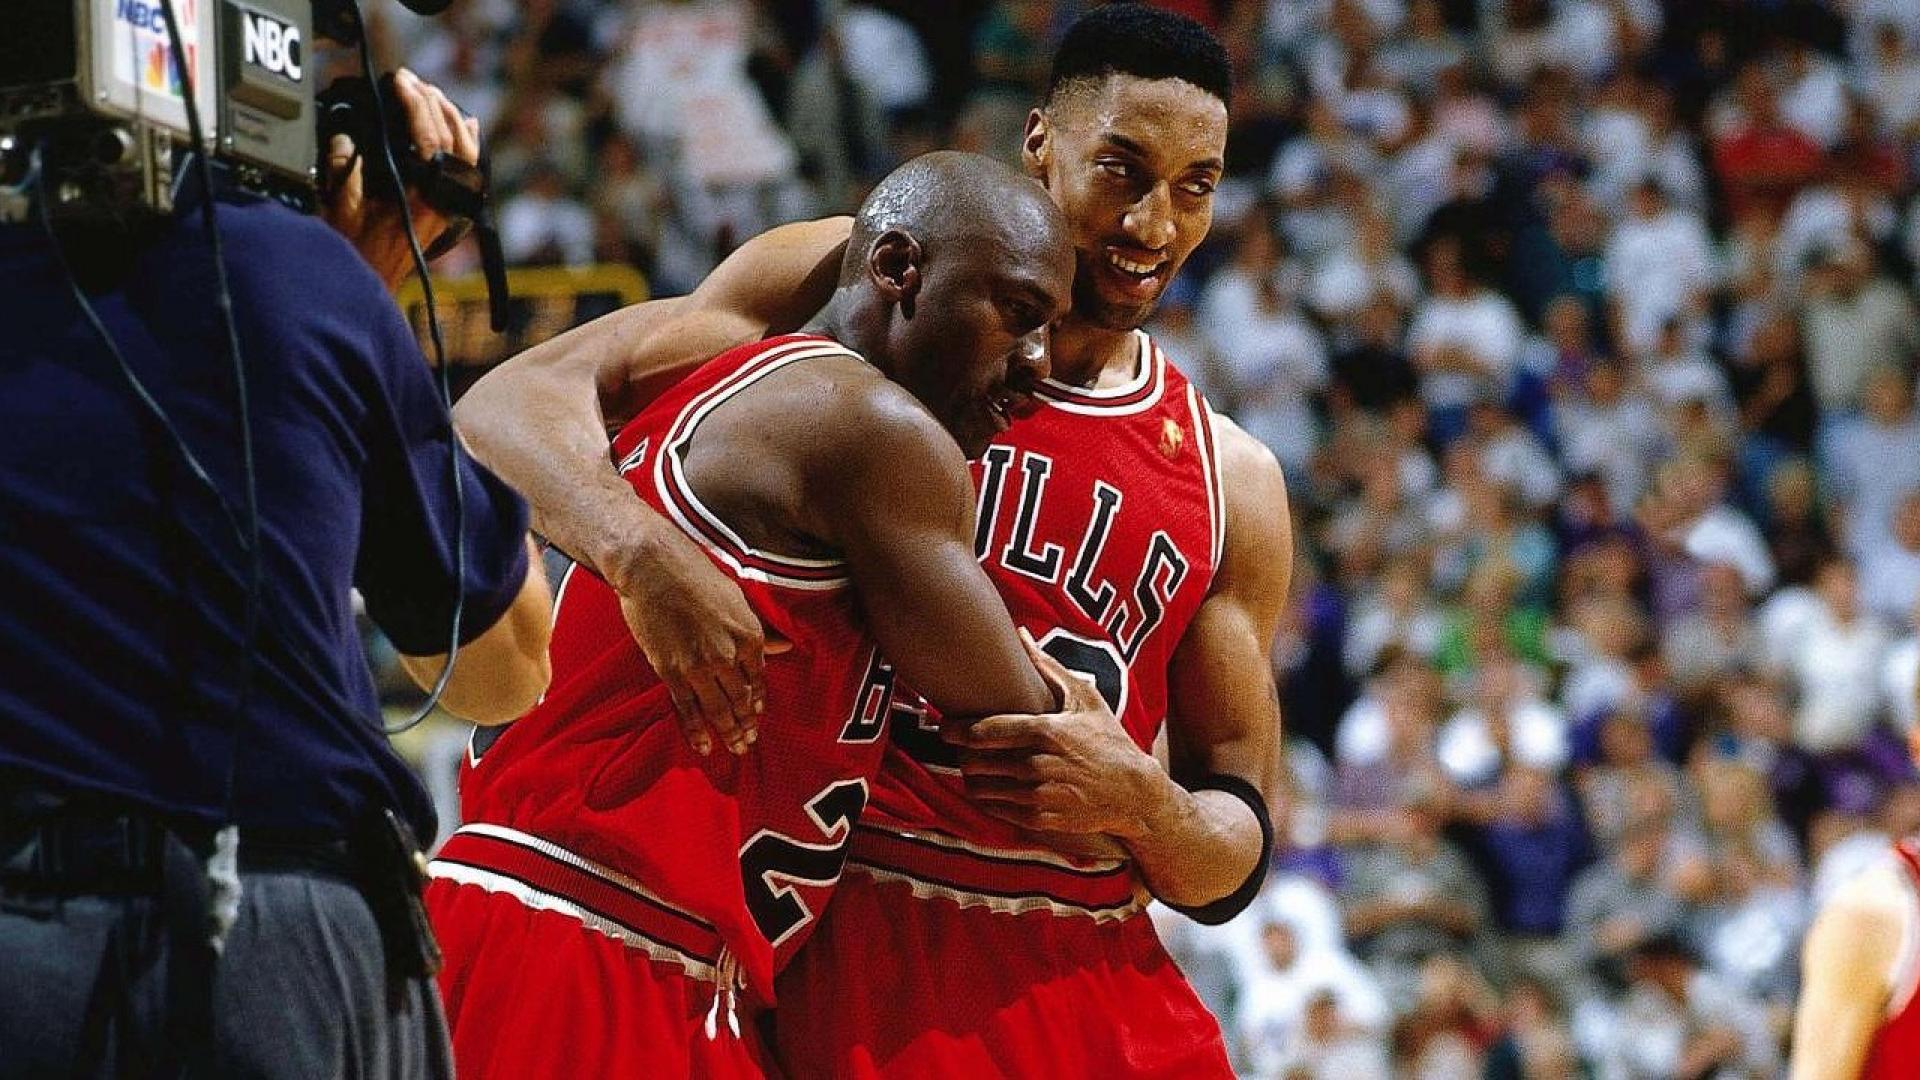 Top NBA Finals moments  Michael Jordan s flu game in 1997 Finals ... a63a4f3cc